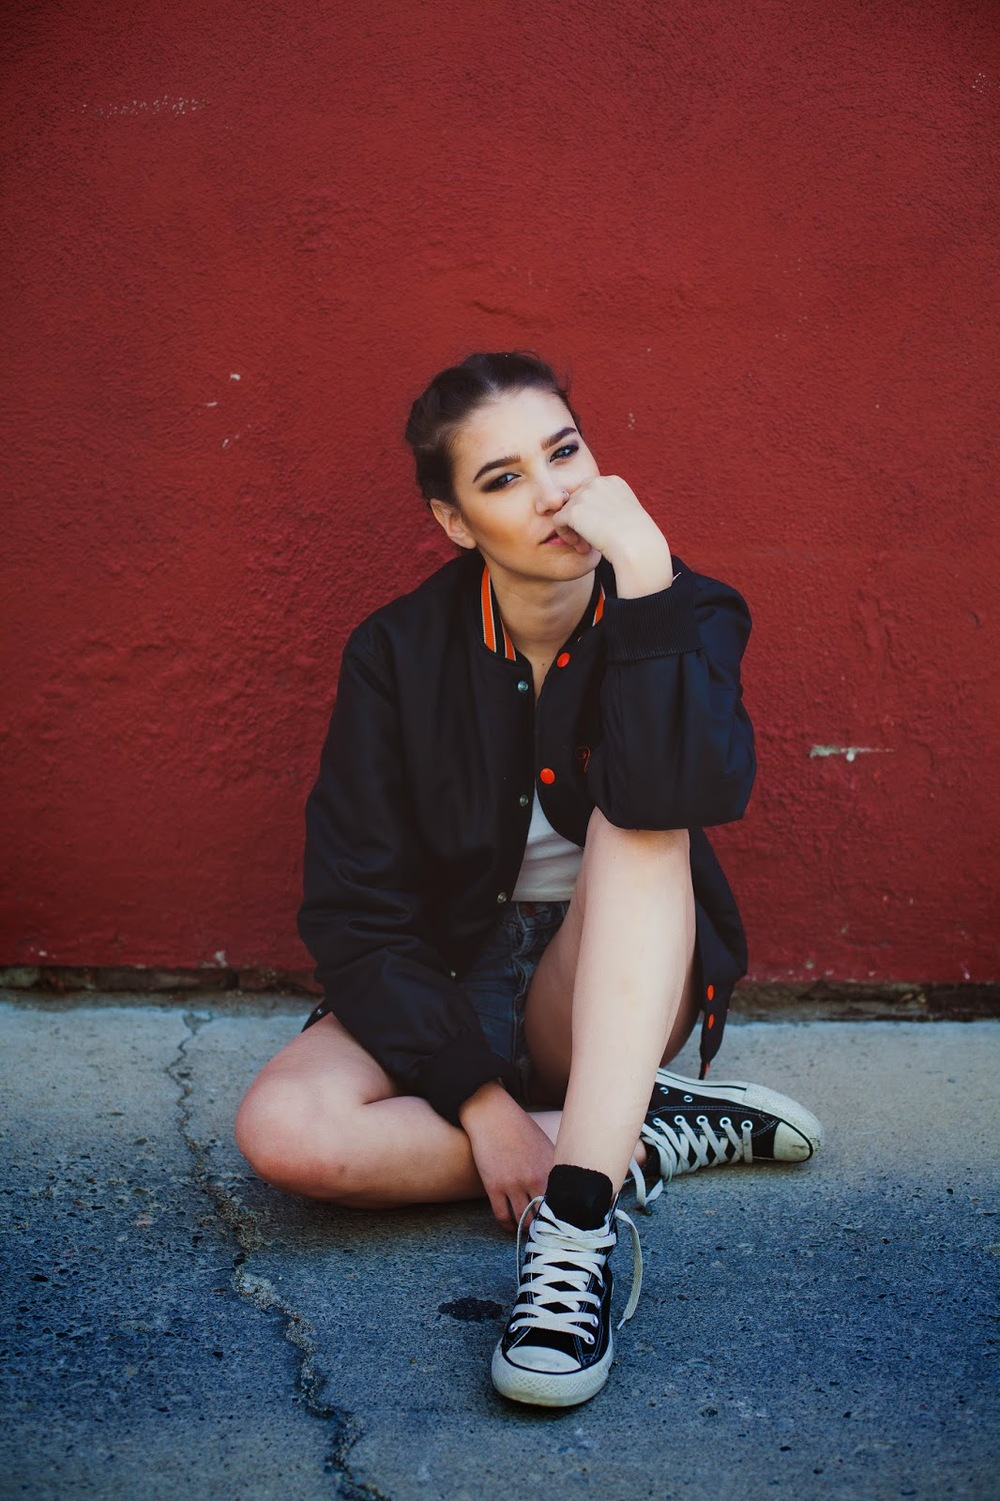 Brandy Melville top / H&M shorts / Vintage varsity jacket Photos by: James Stewart